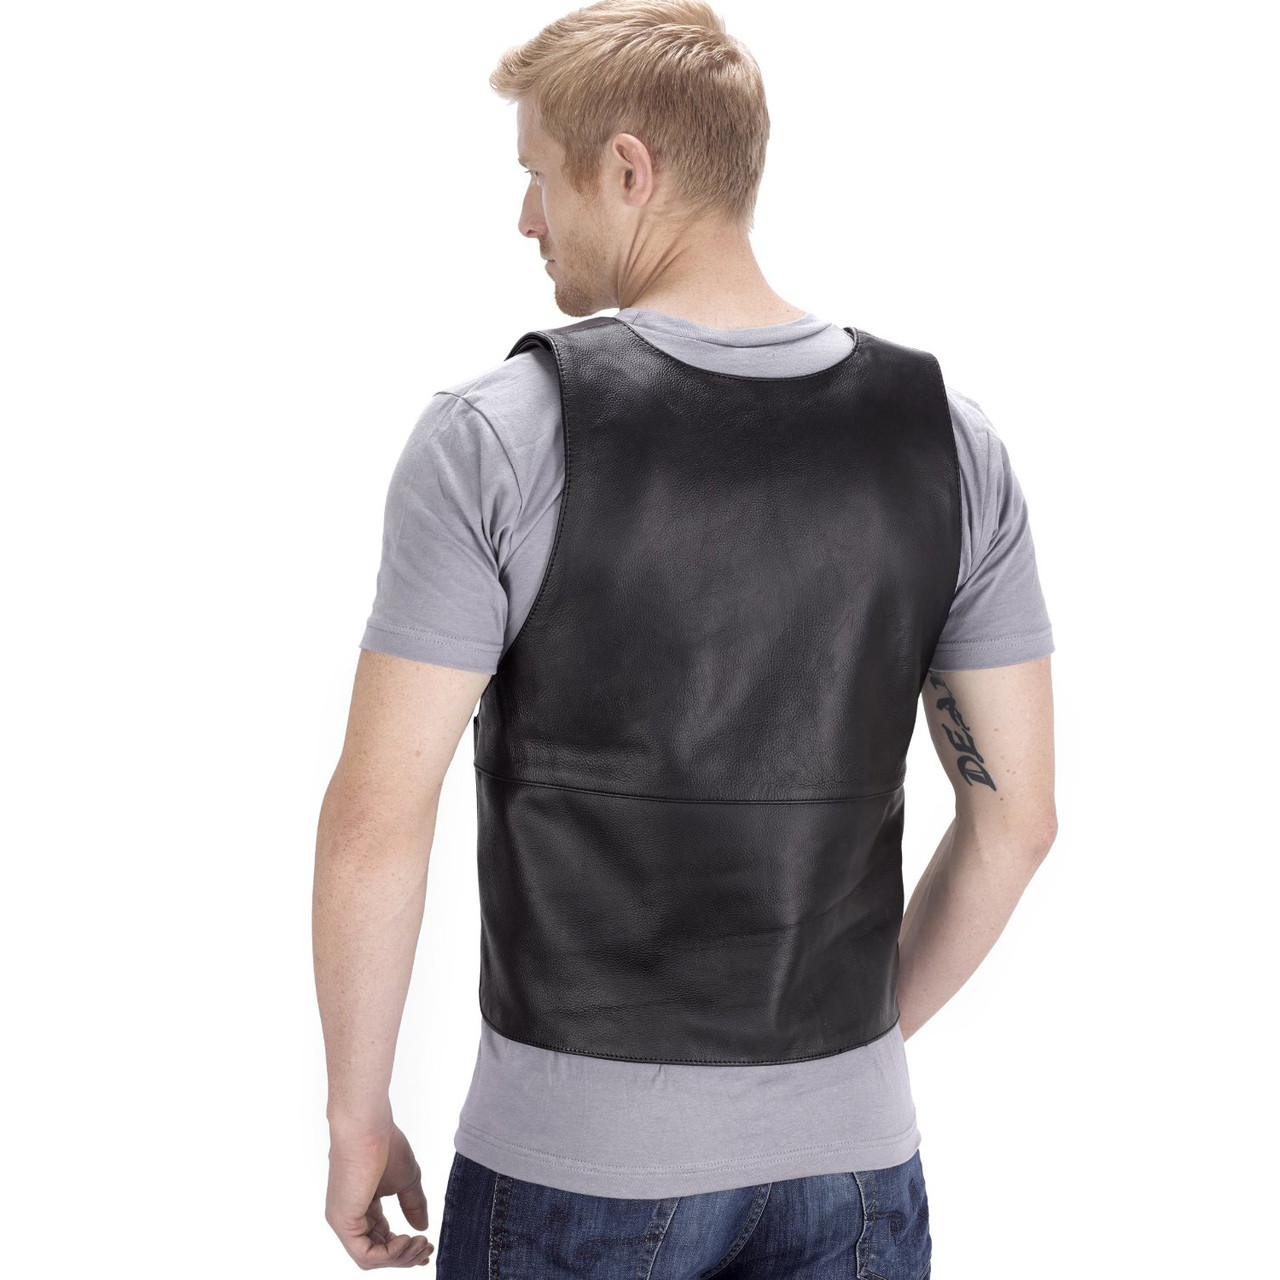 VikingCycle Bullet Proof Style Motorcycle Vest for Men Back Side